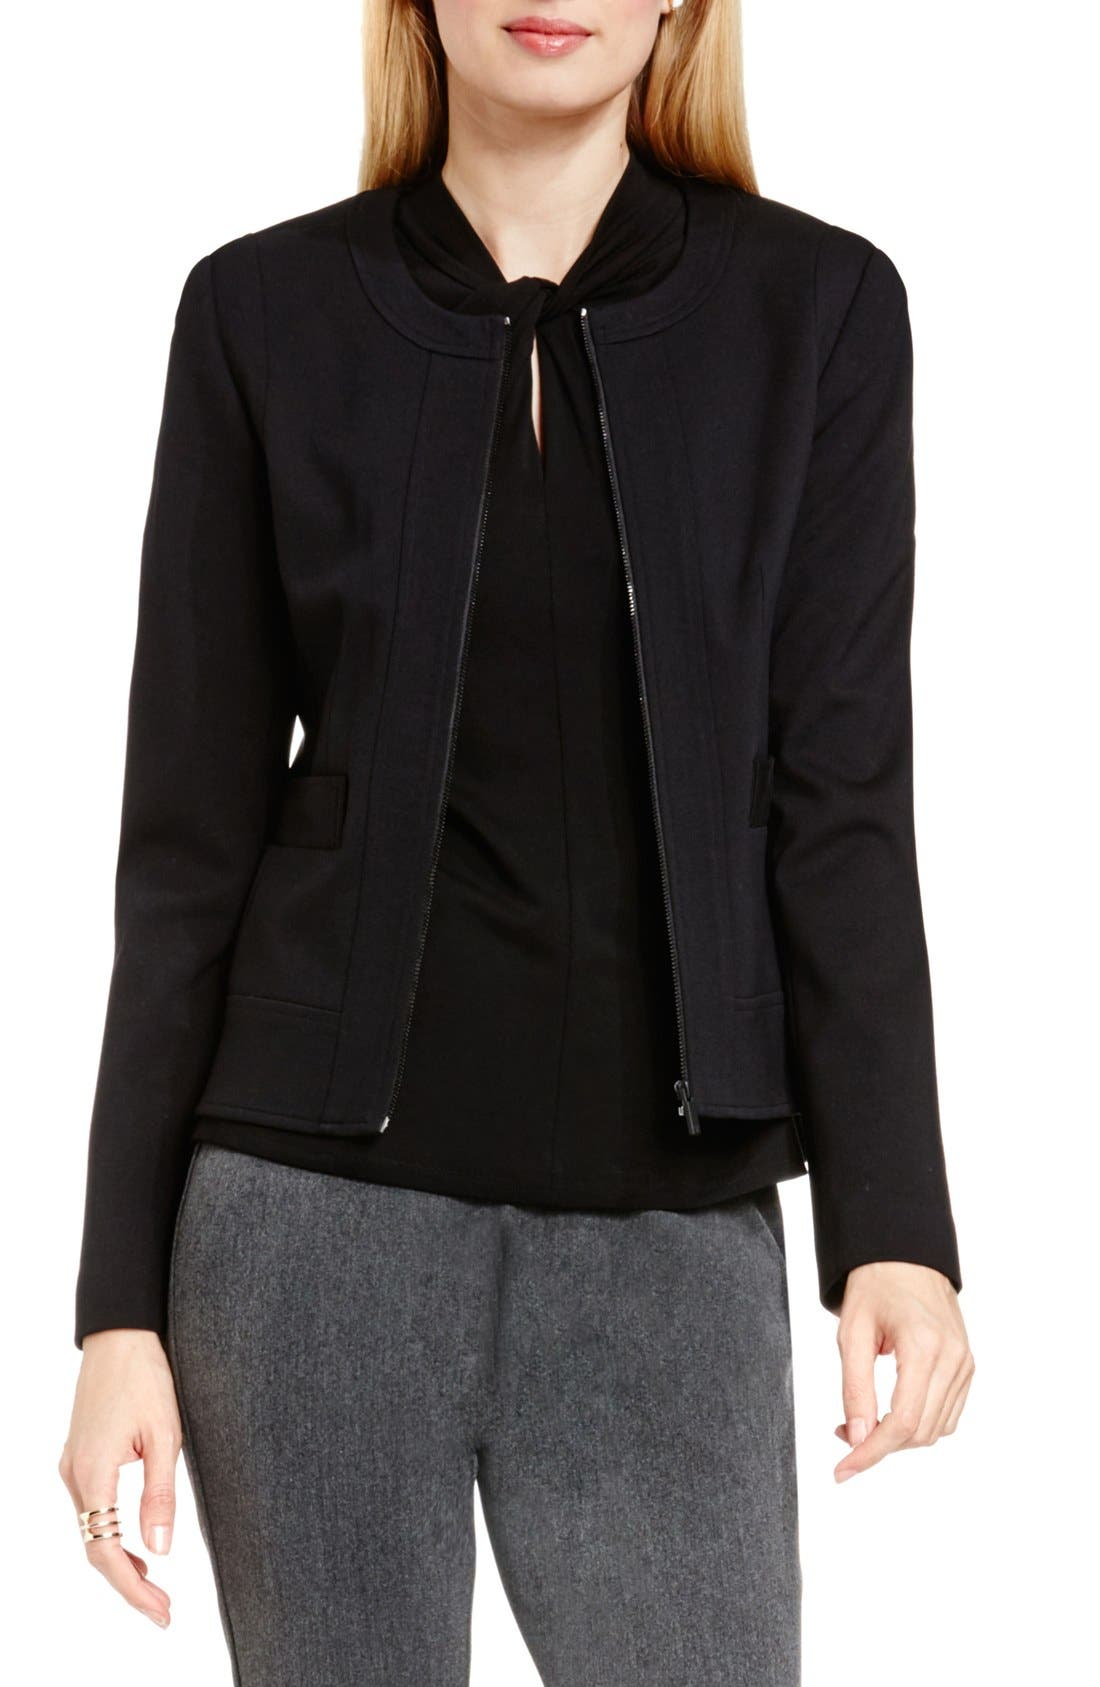 Vince Camuto Front Zip Collarless Jacket (Regular & Petite)